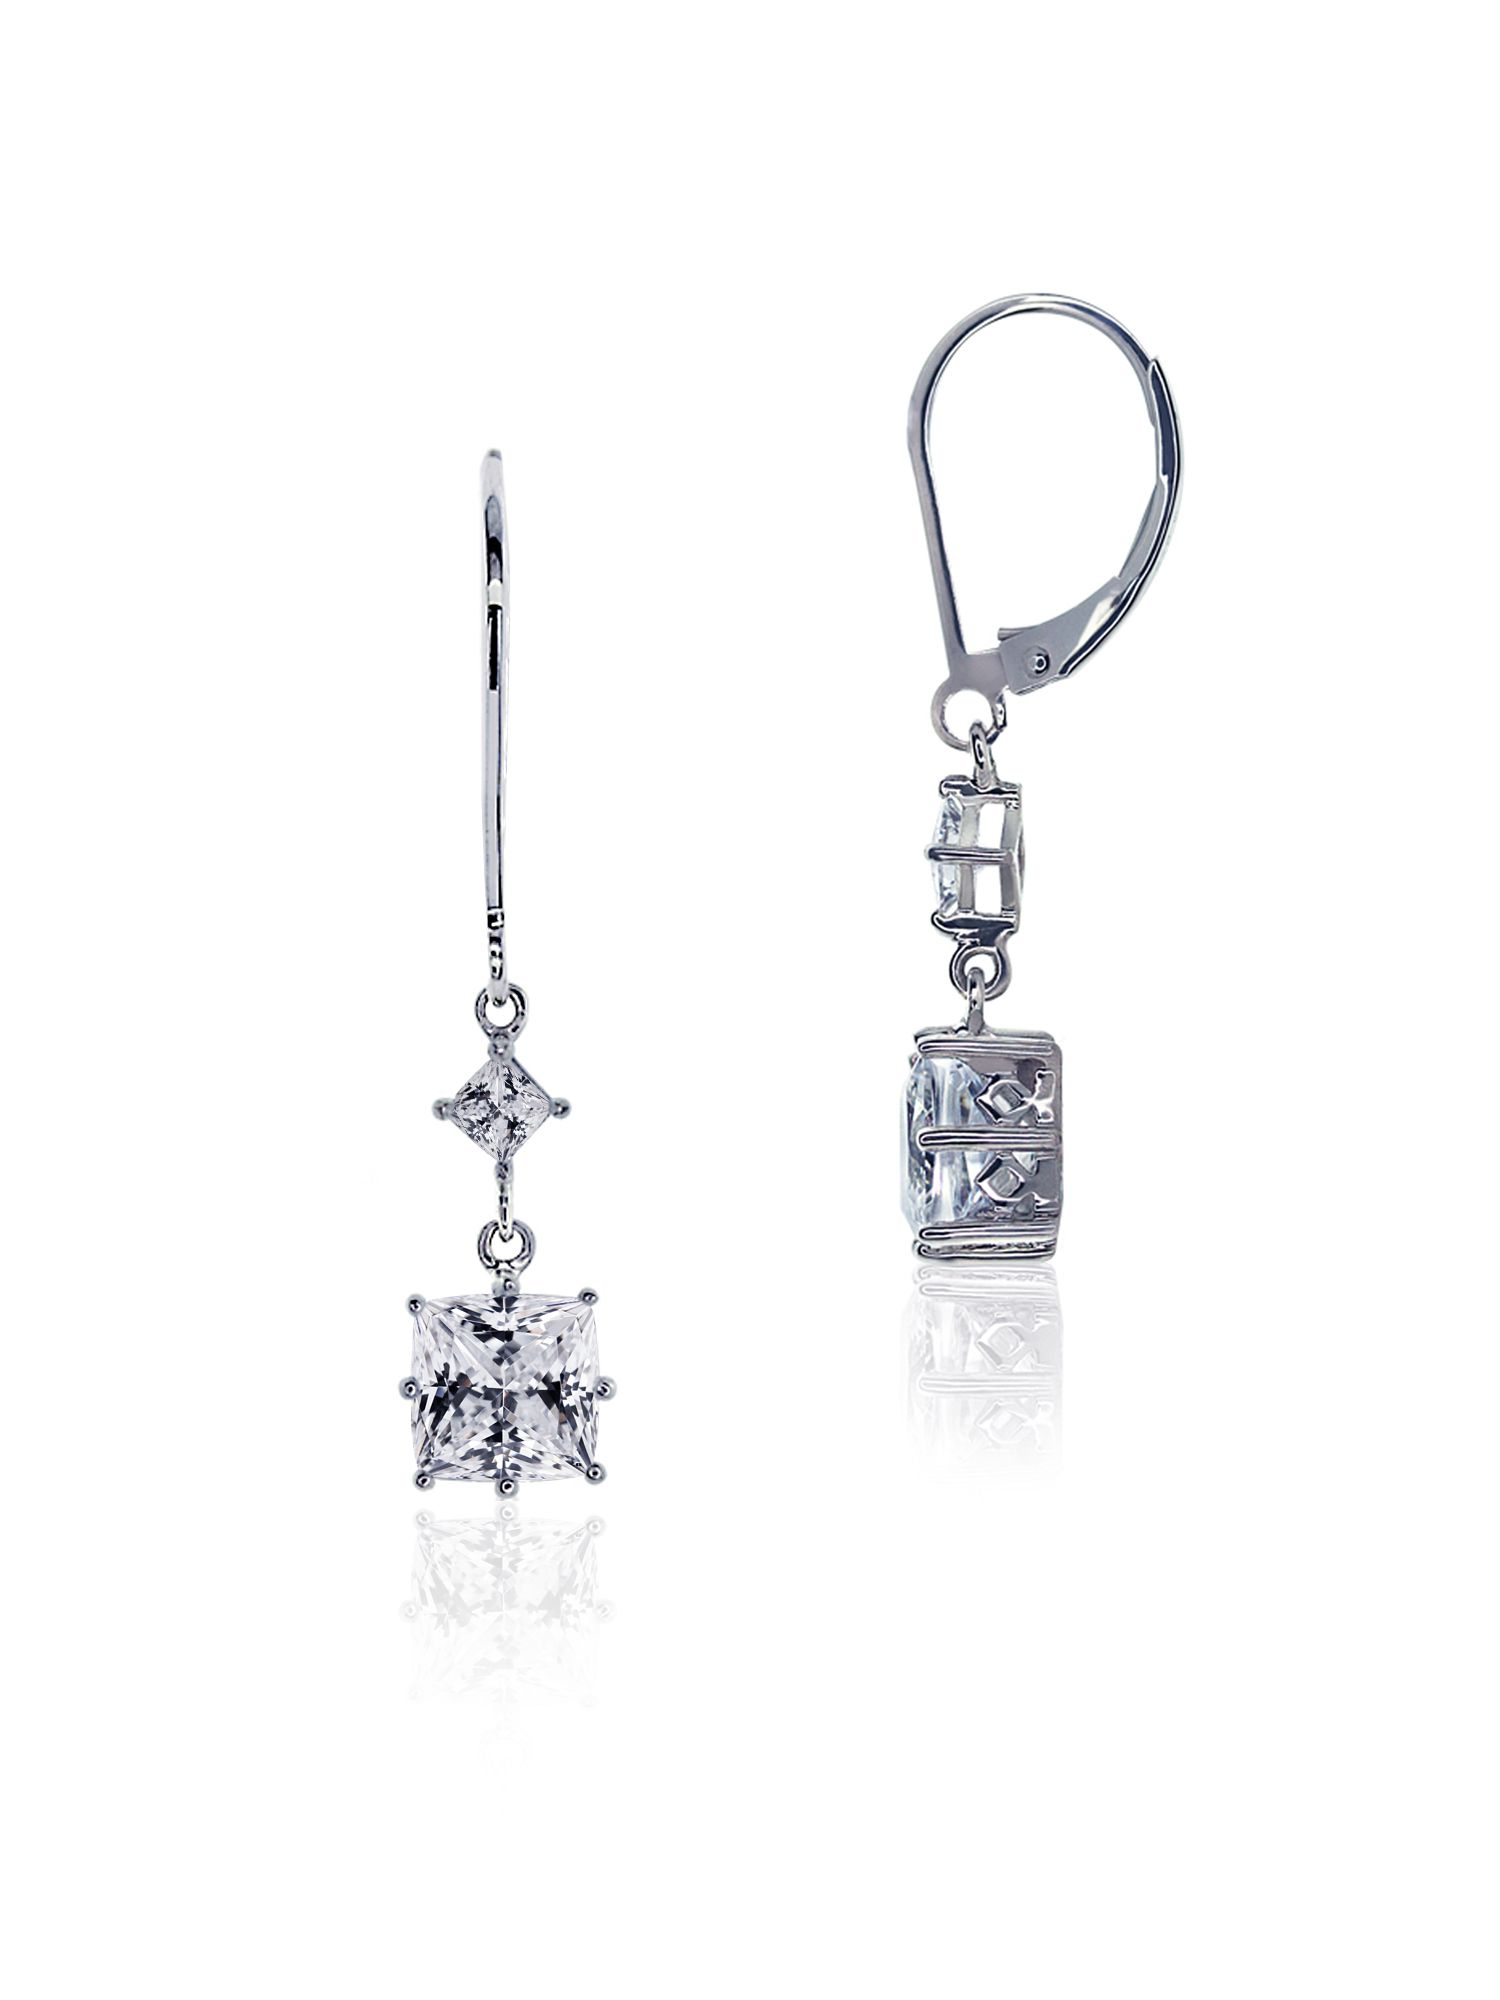 Princess Long Euro Fancy Drop Earrings